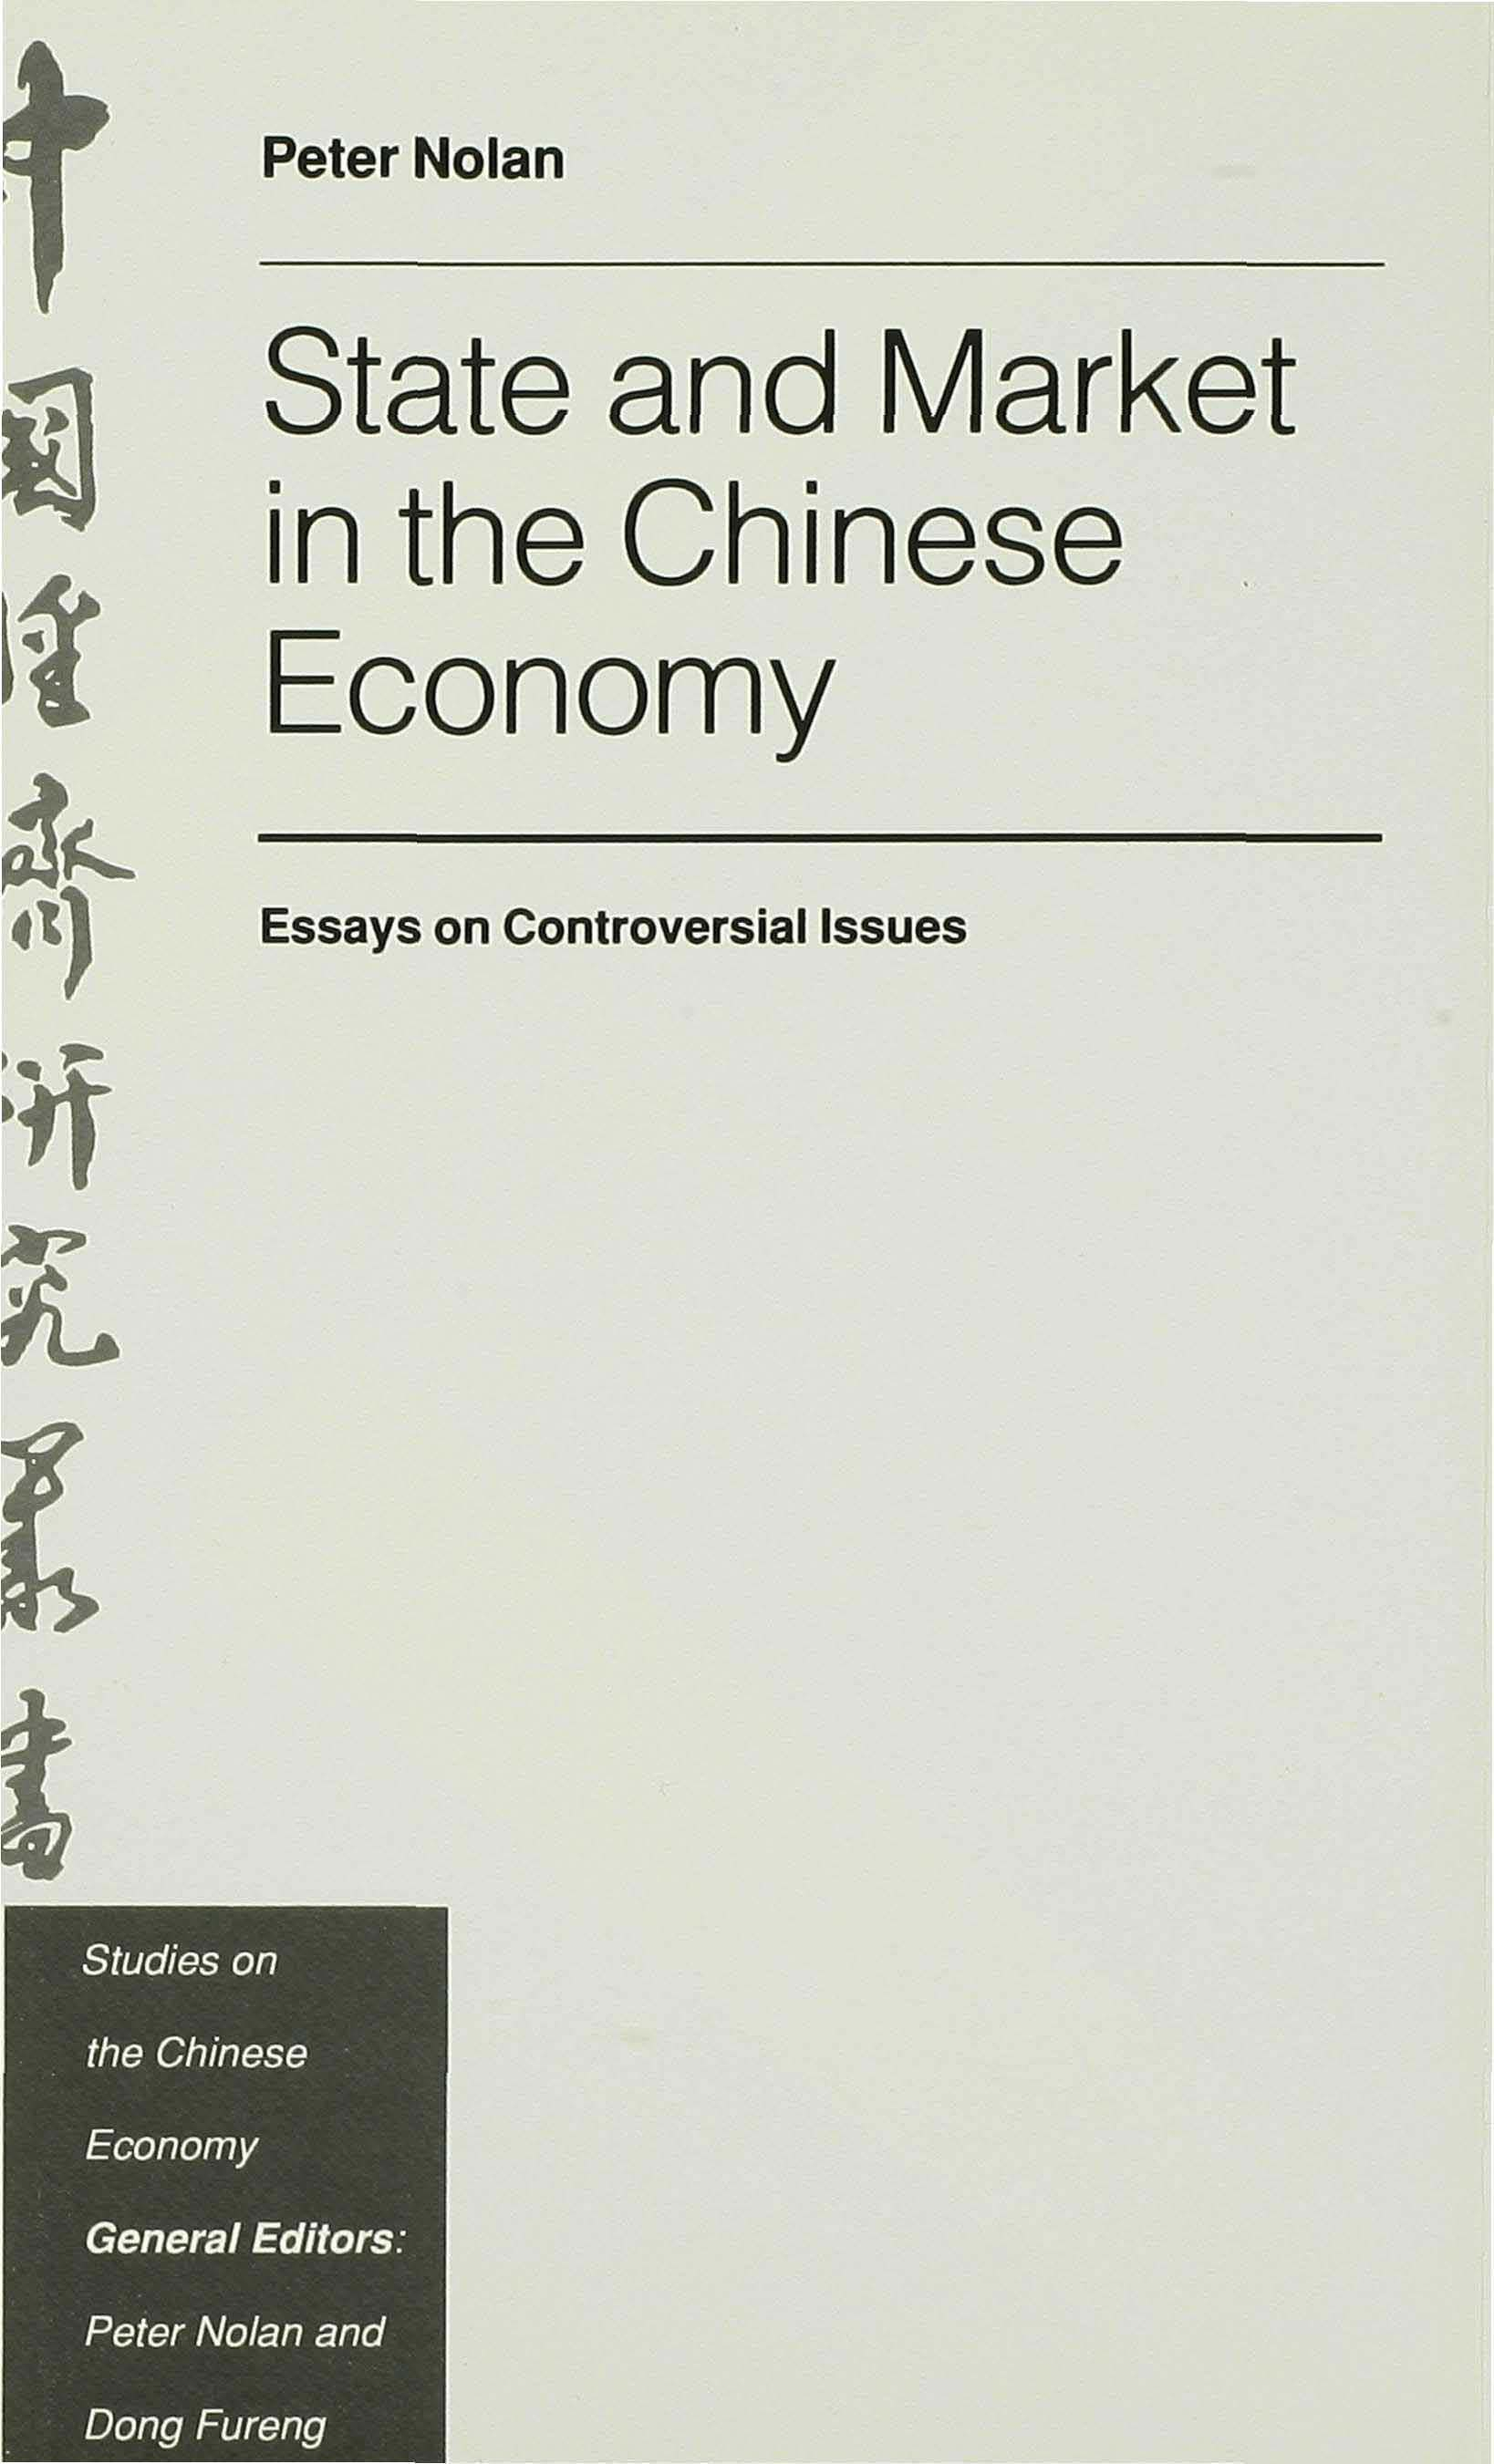 Download Ebook State and Market in the Chinese Economy by Peter Nolan Pdf